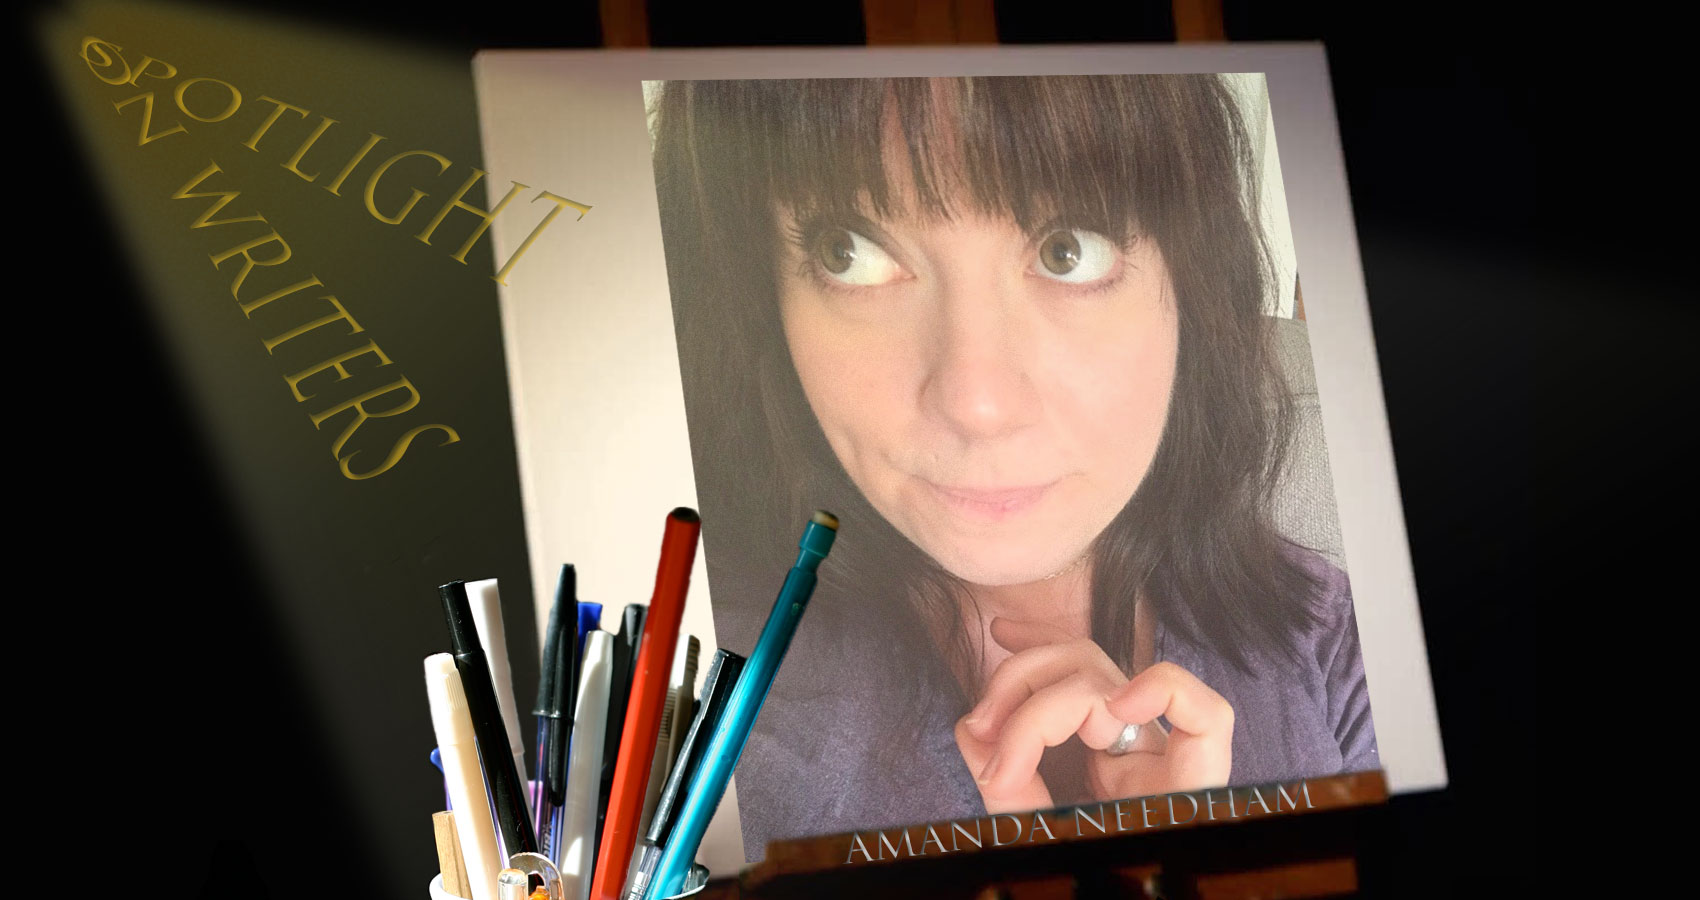 Spotlight On Writers - Amanda Needham, interview at Spillwords.com